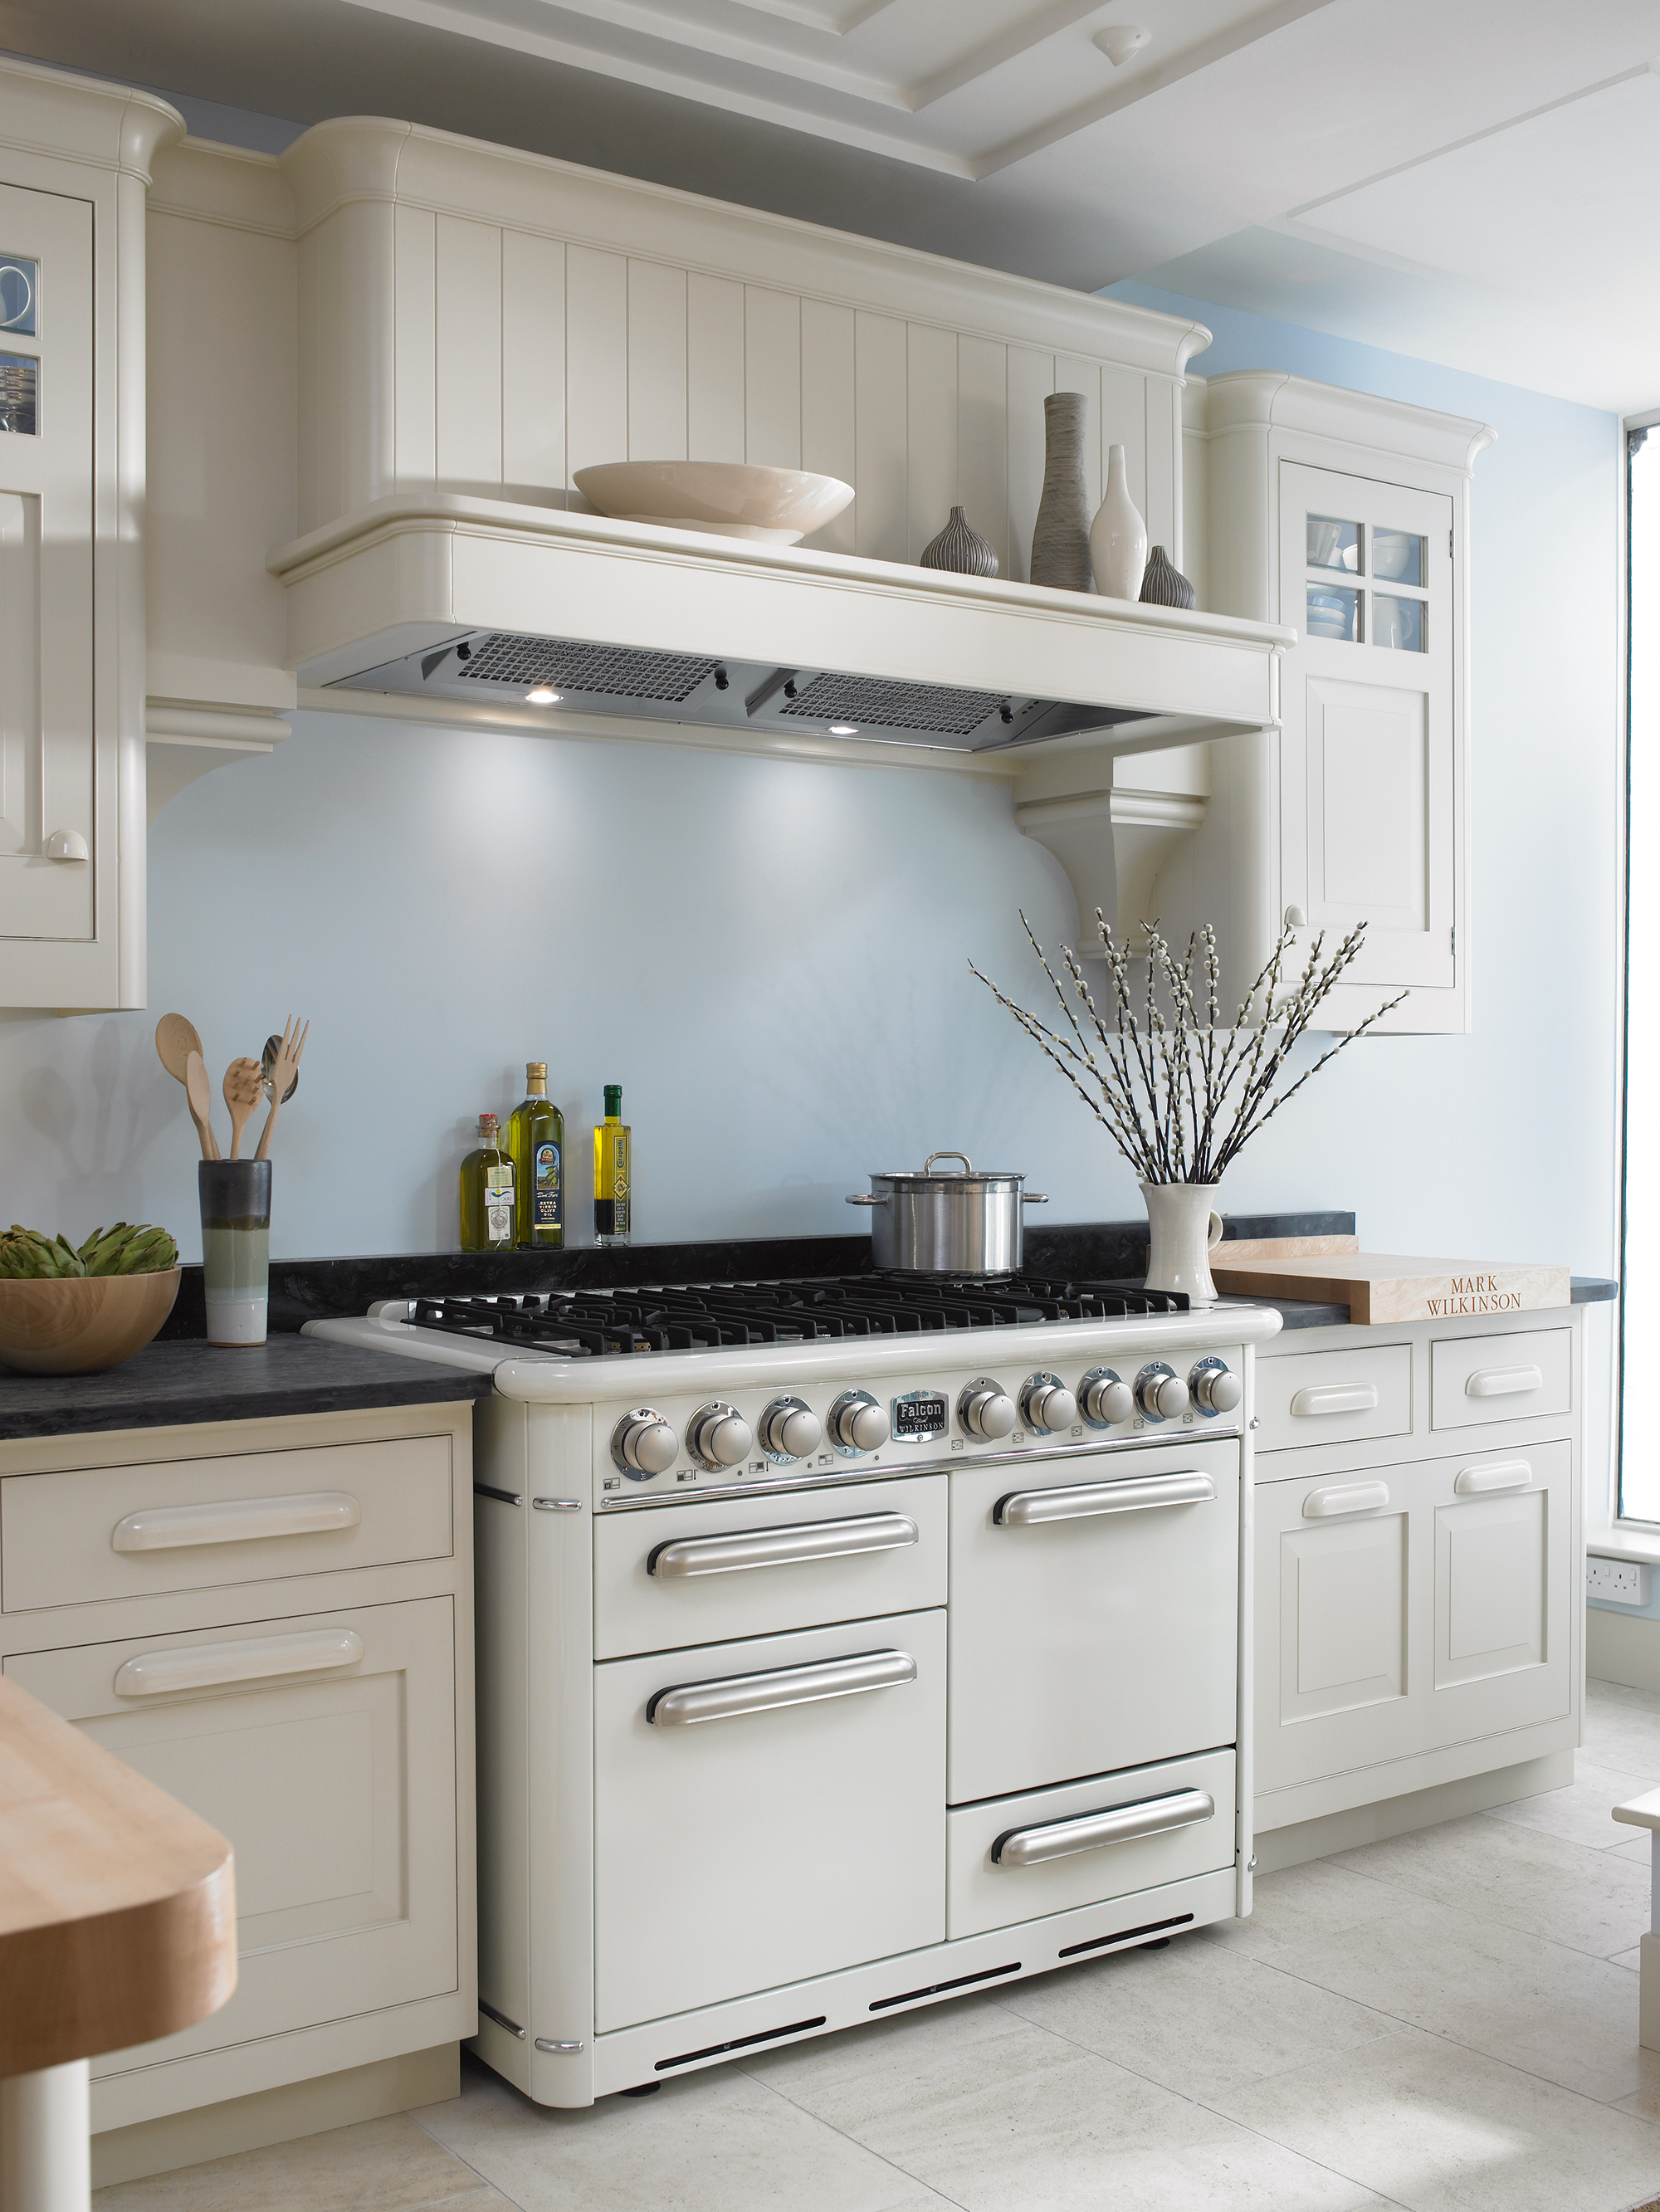 Mark wilkinson furniture collection english classic kitchen 20